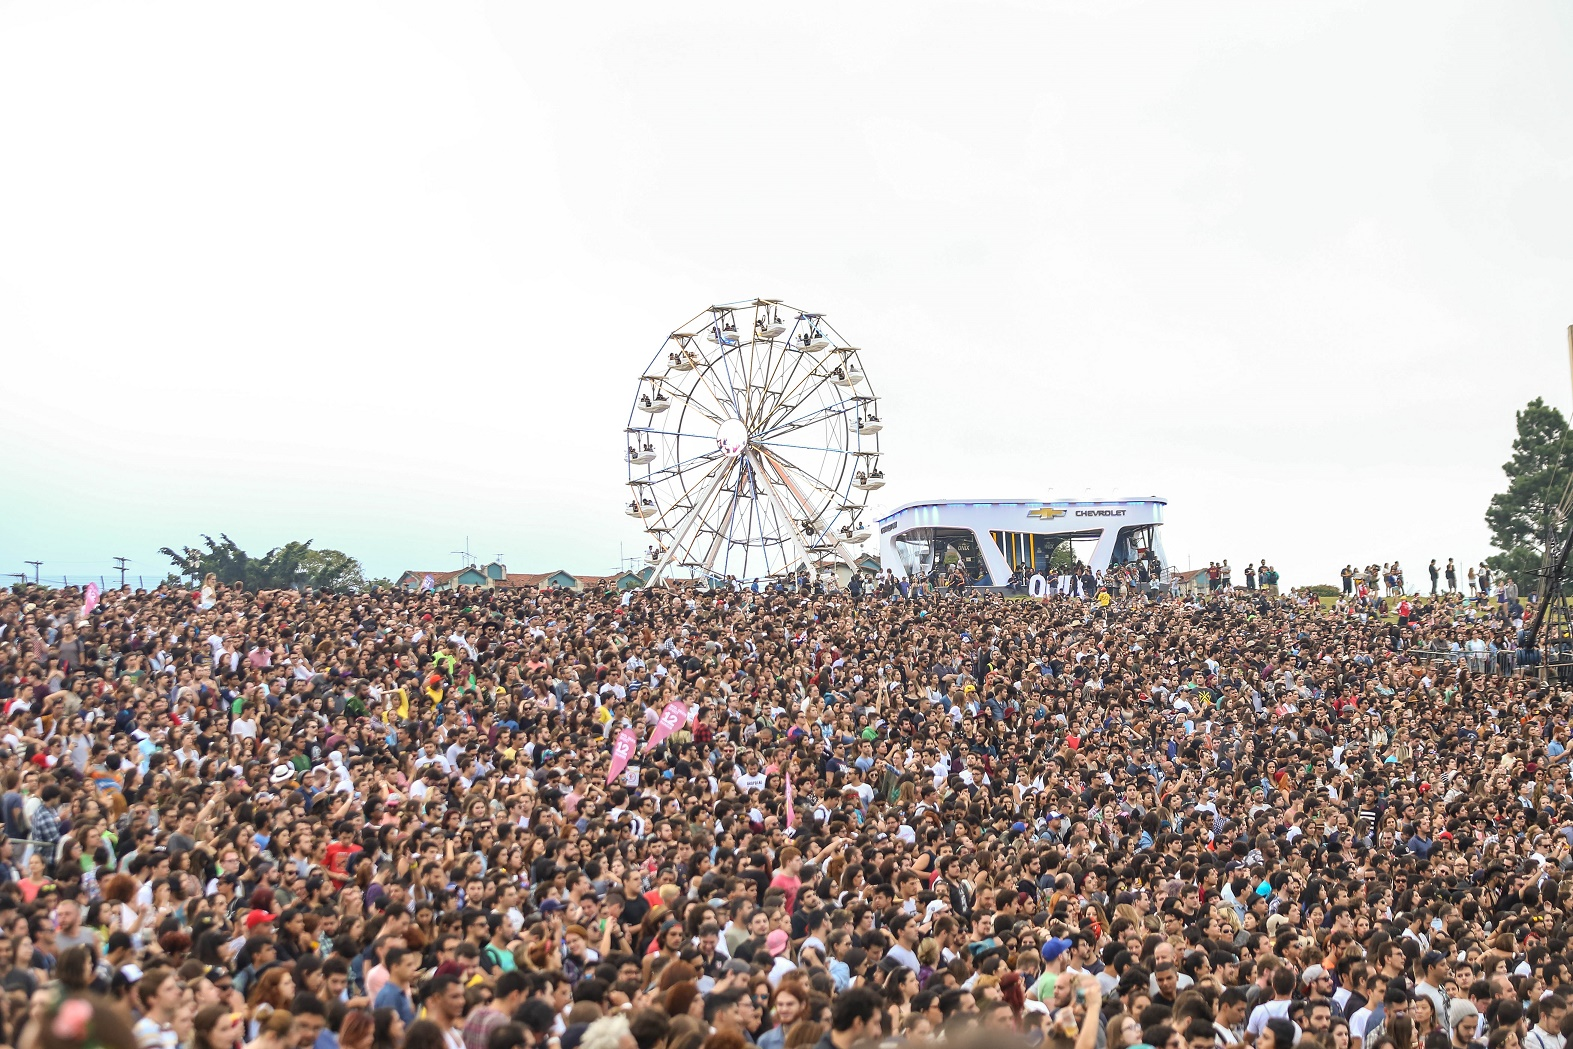 Público lota o Lollapalooza, em Interlagos, São Paulo. Foto de William Volco/Brazil Photo Press